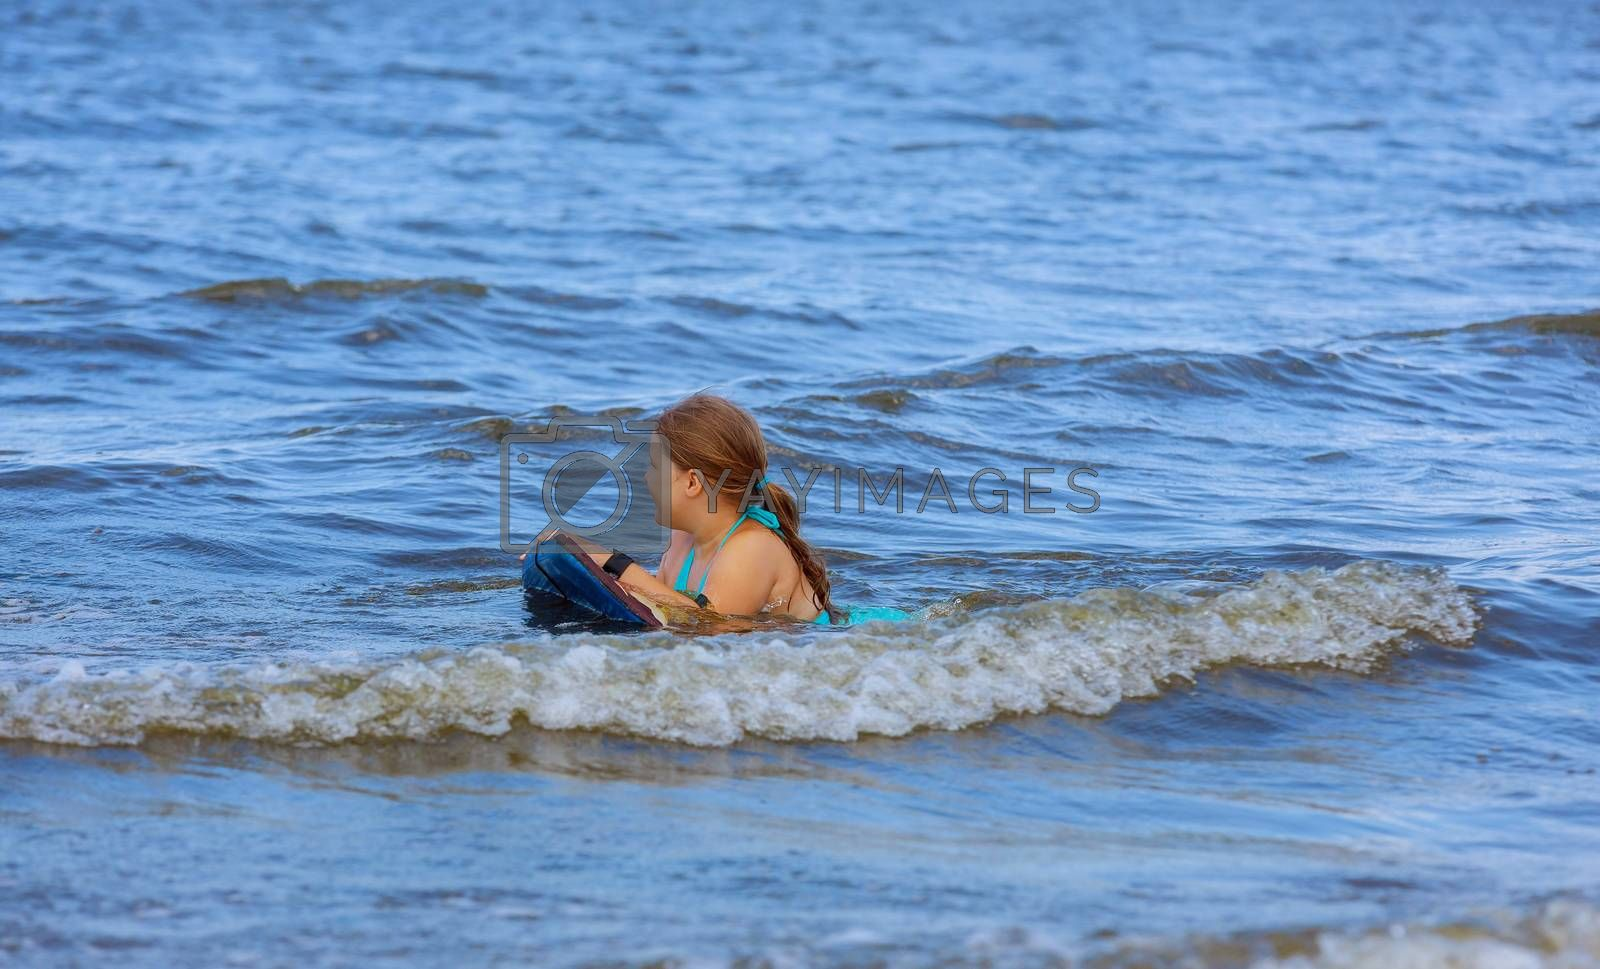 Young girl swimming in the ocean in waves on the beach.